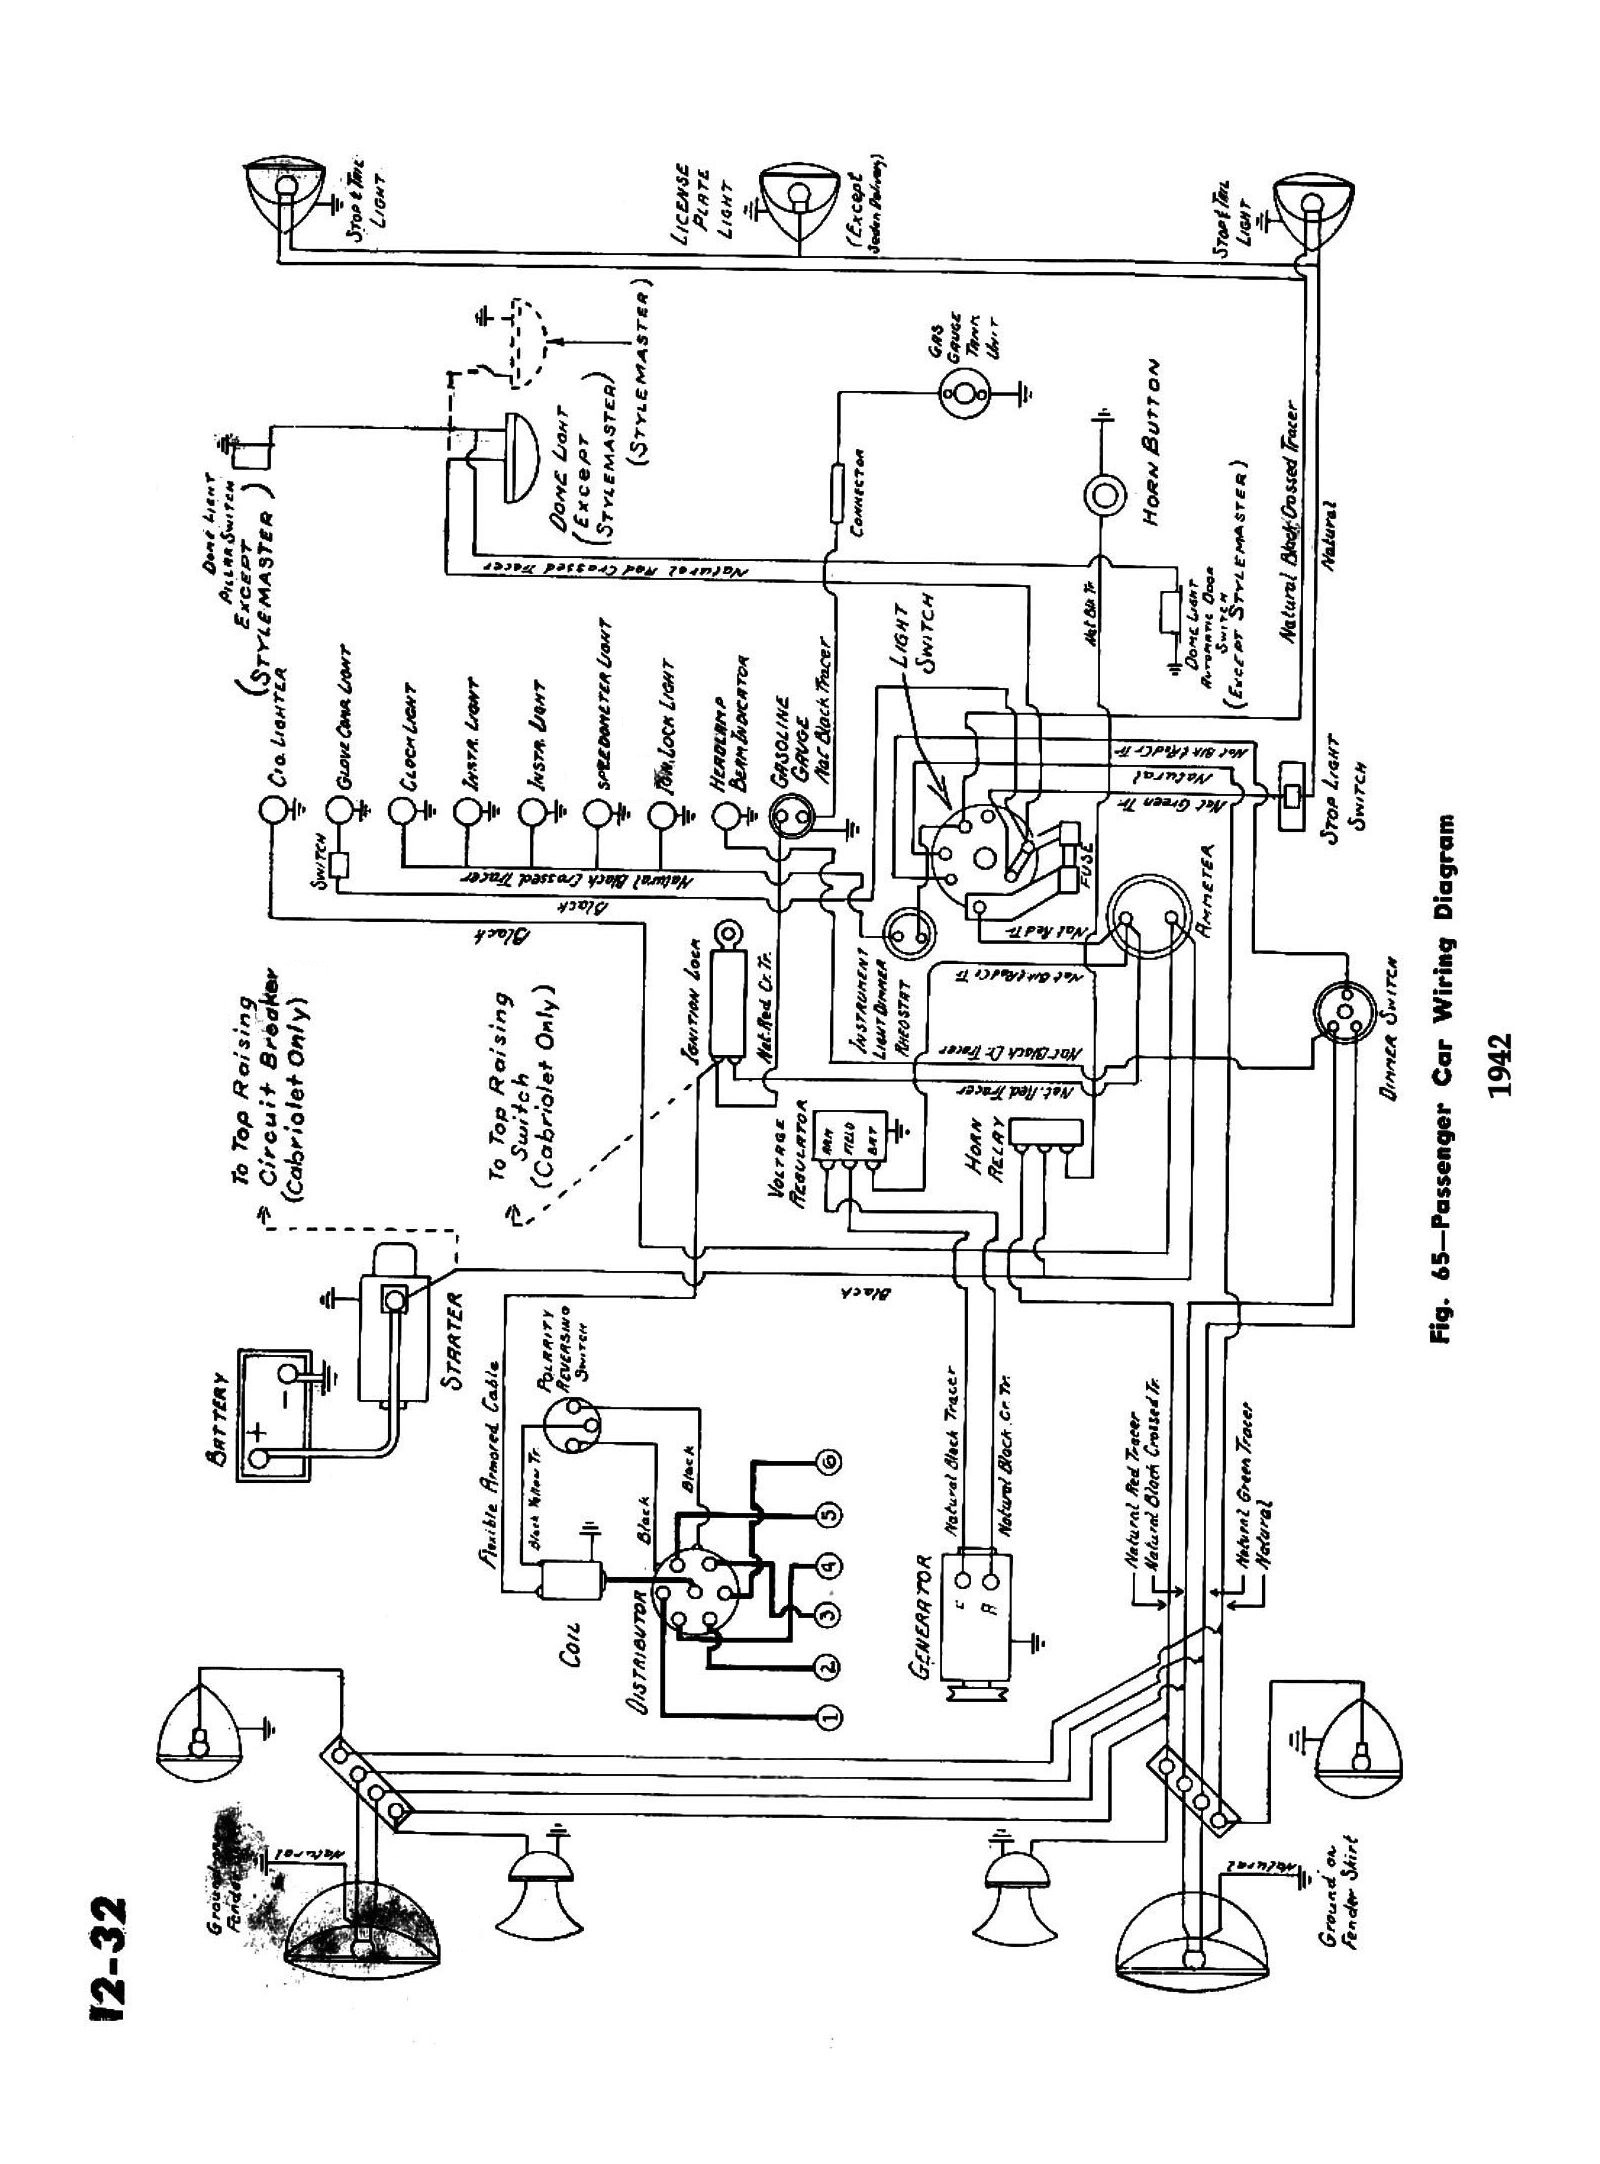 WRG-9599] Painless Wiring Diagrams 1950 Chevy 3100 on painless wiring systems, painless wiring tool, painless wiring for 68 camaro, painless wiring 81, painless wiring kits, painless 5 3 harness,